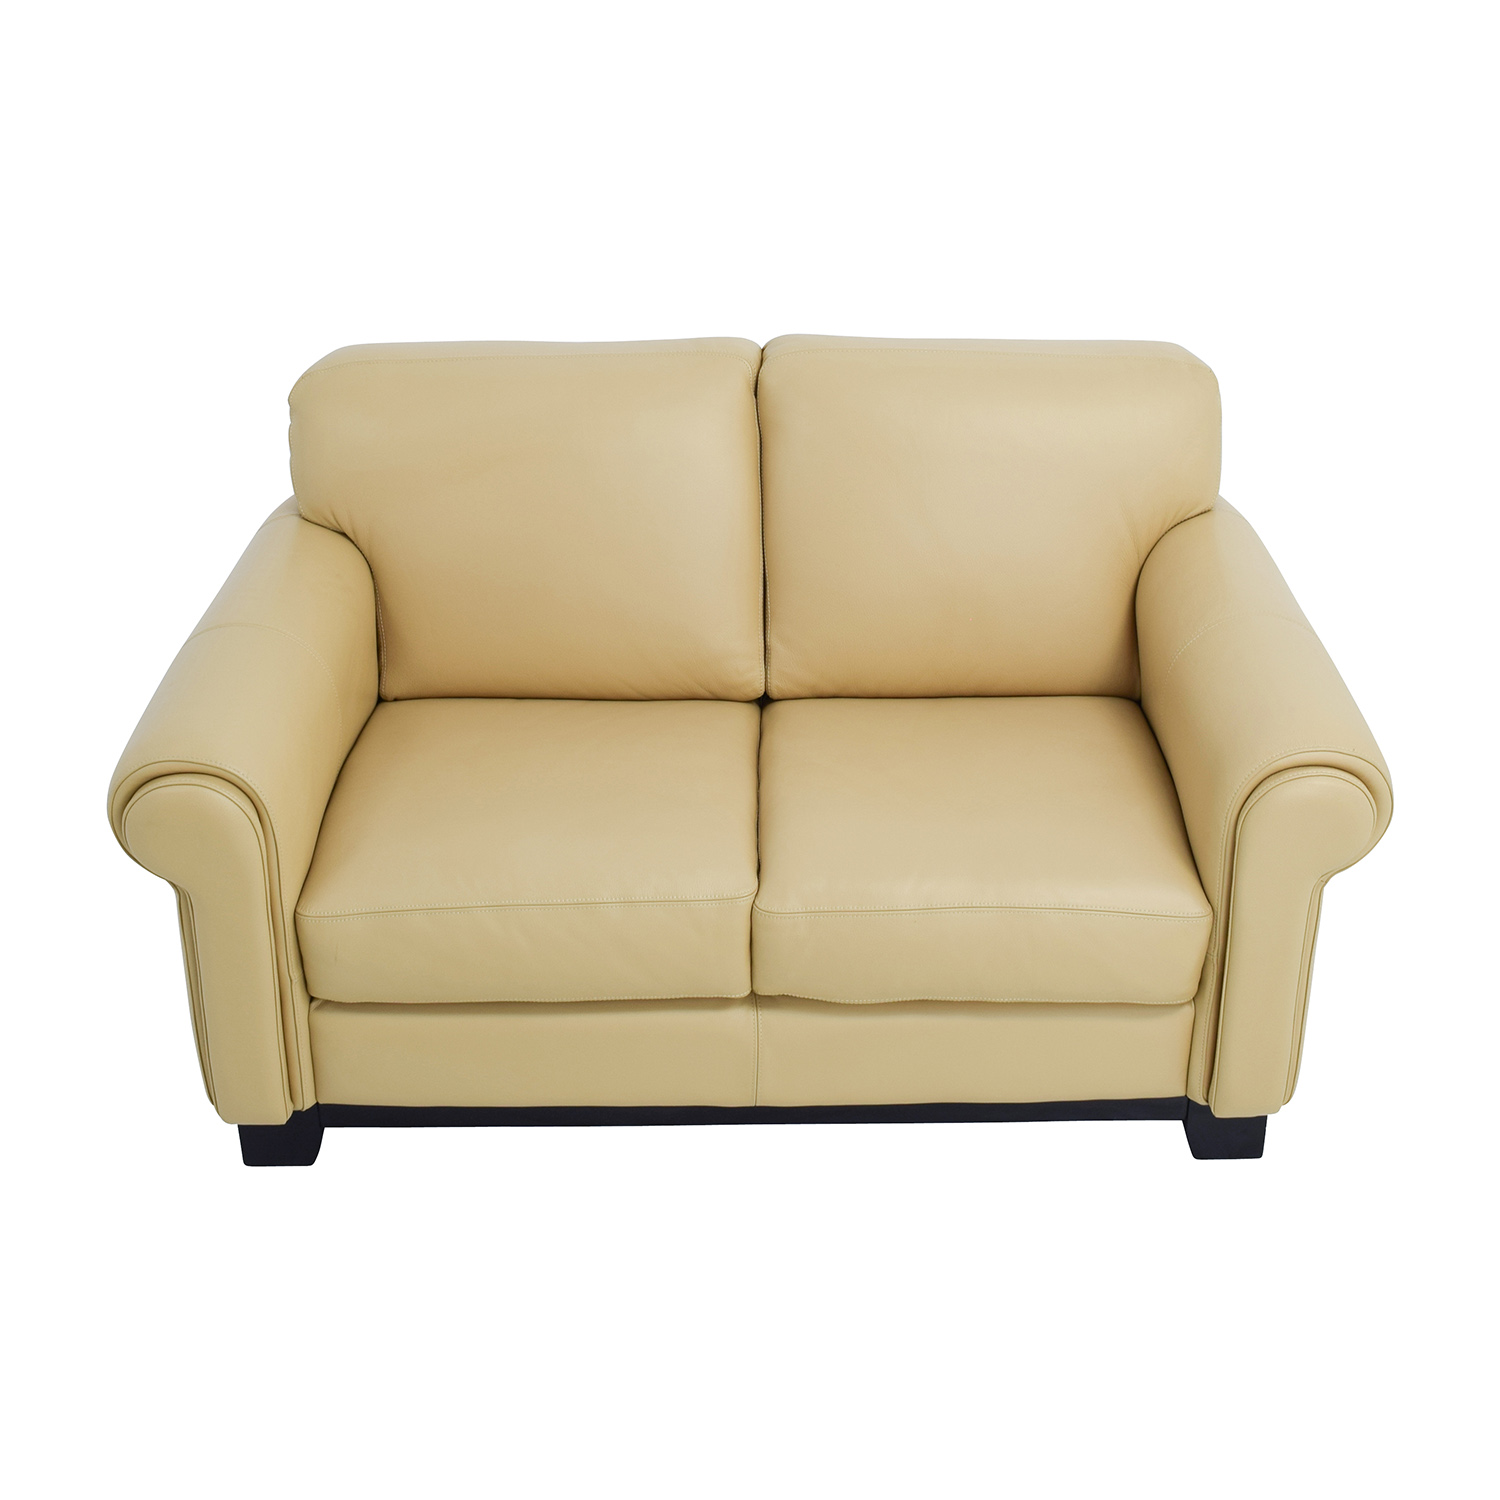 Chateau DAx Chateau DAx Beige Leather Two-seat Cushion Loveseat